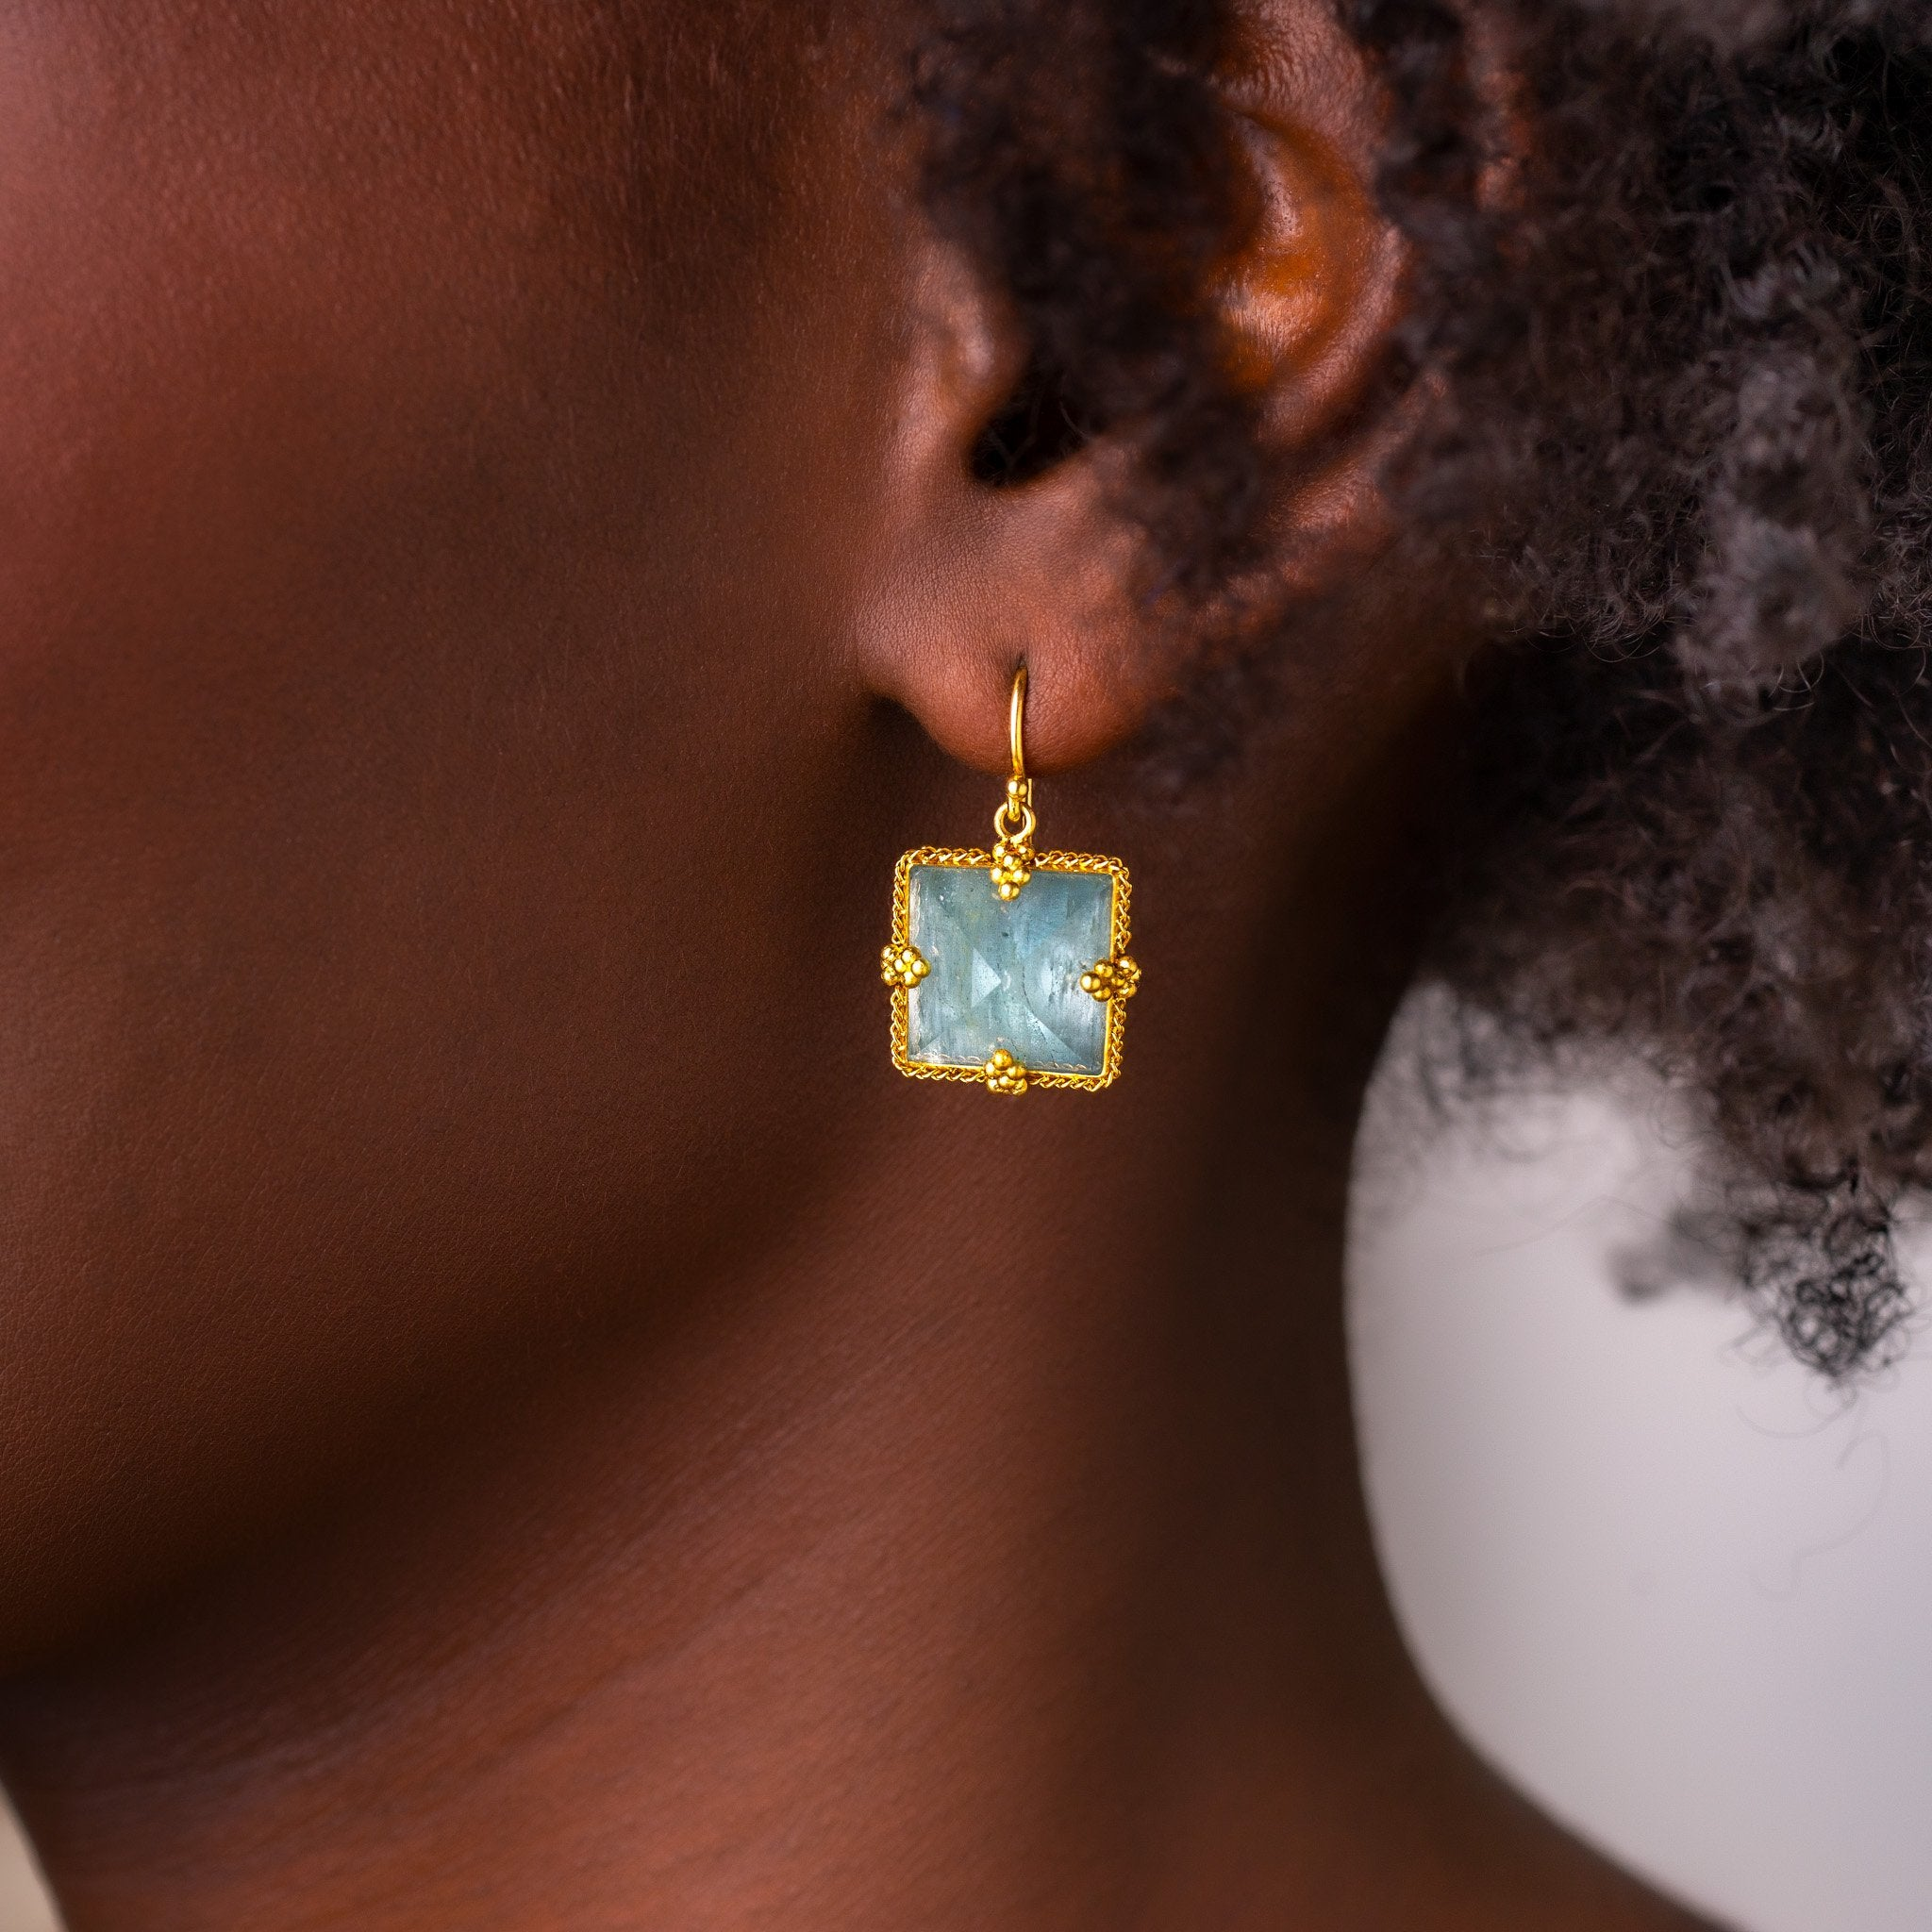 Amali-Square Aquamarine Earrings